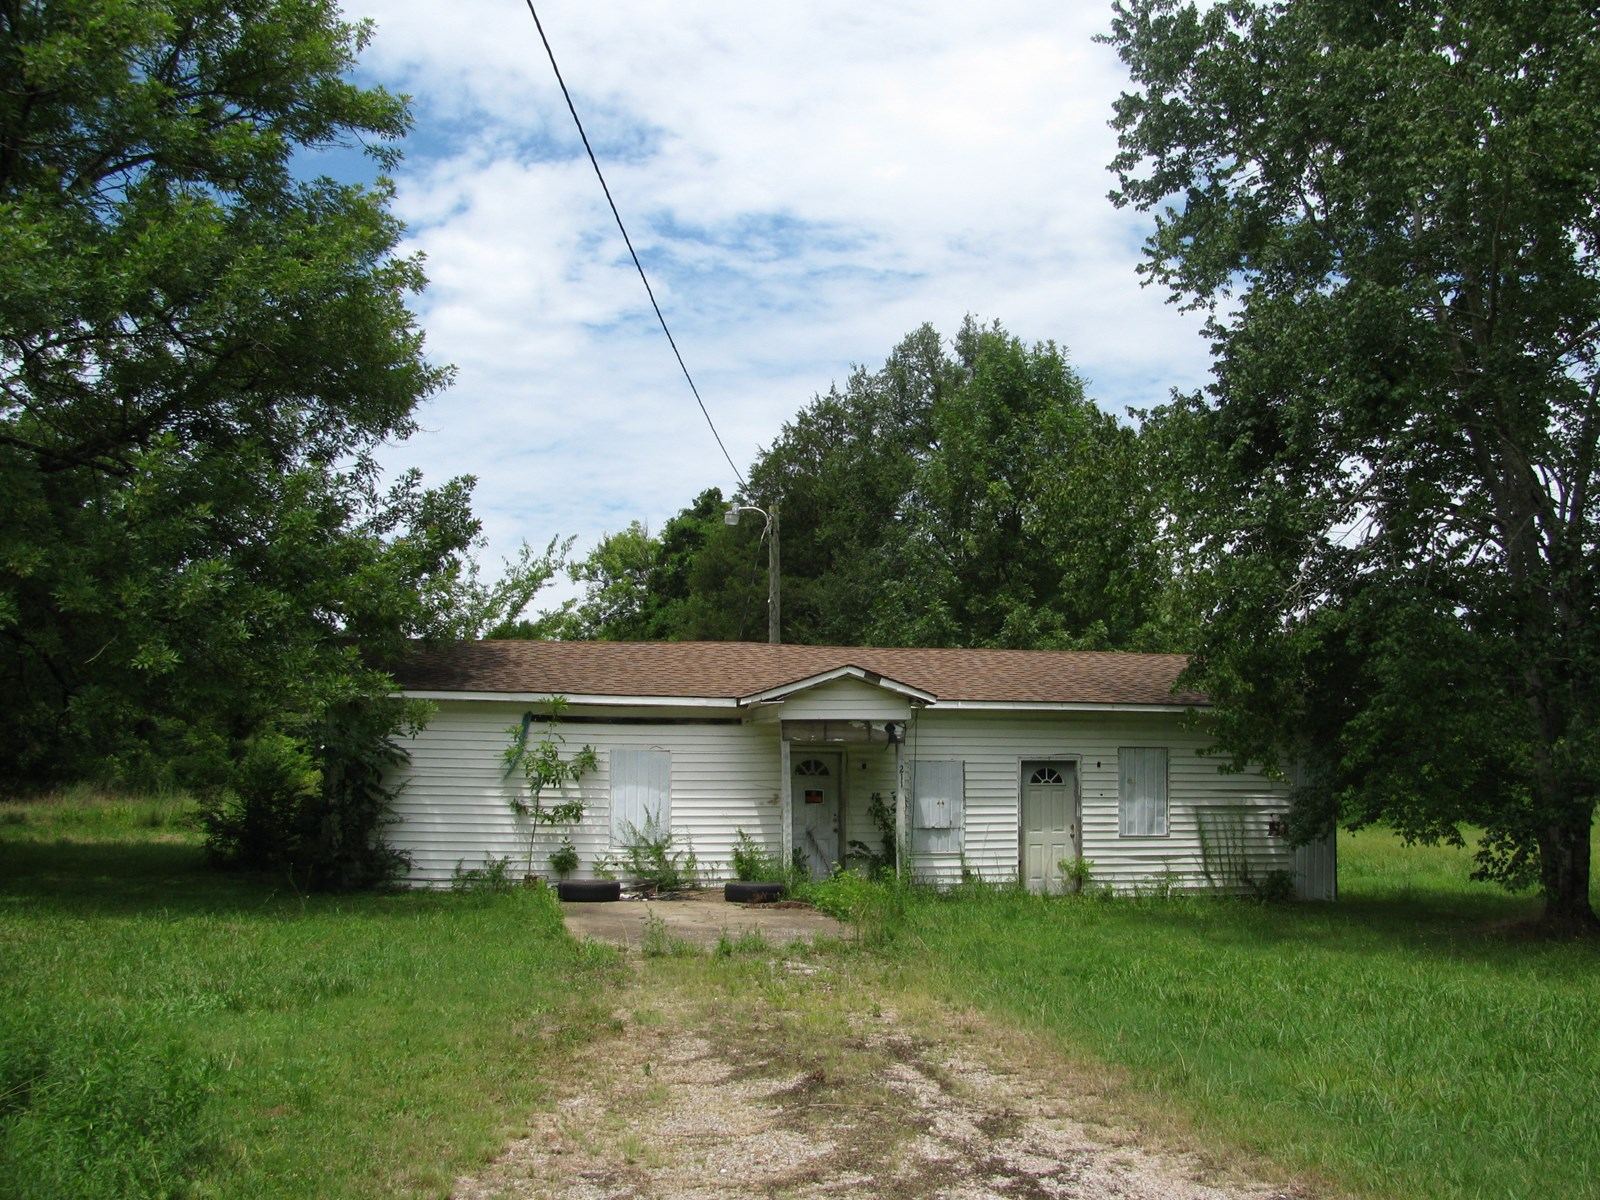 LAND FOR SALE IN ADAMSVILLE, TN, OLD HOUSE